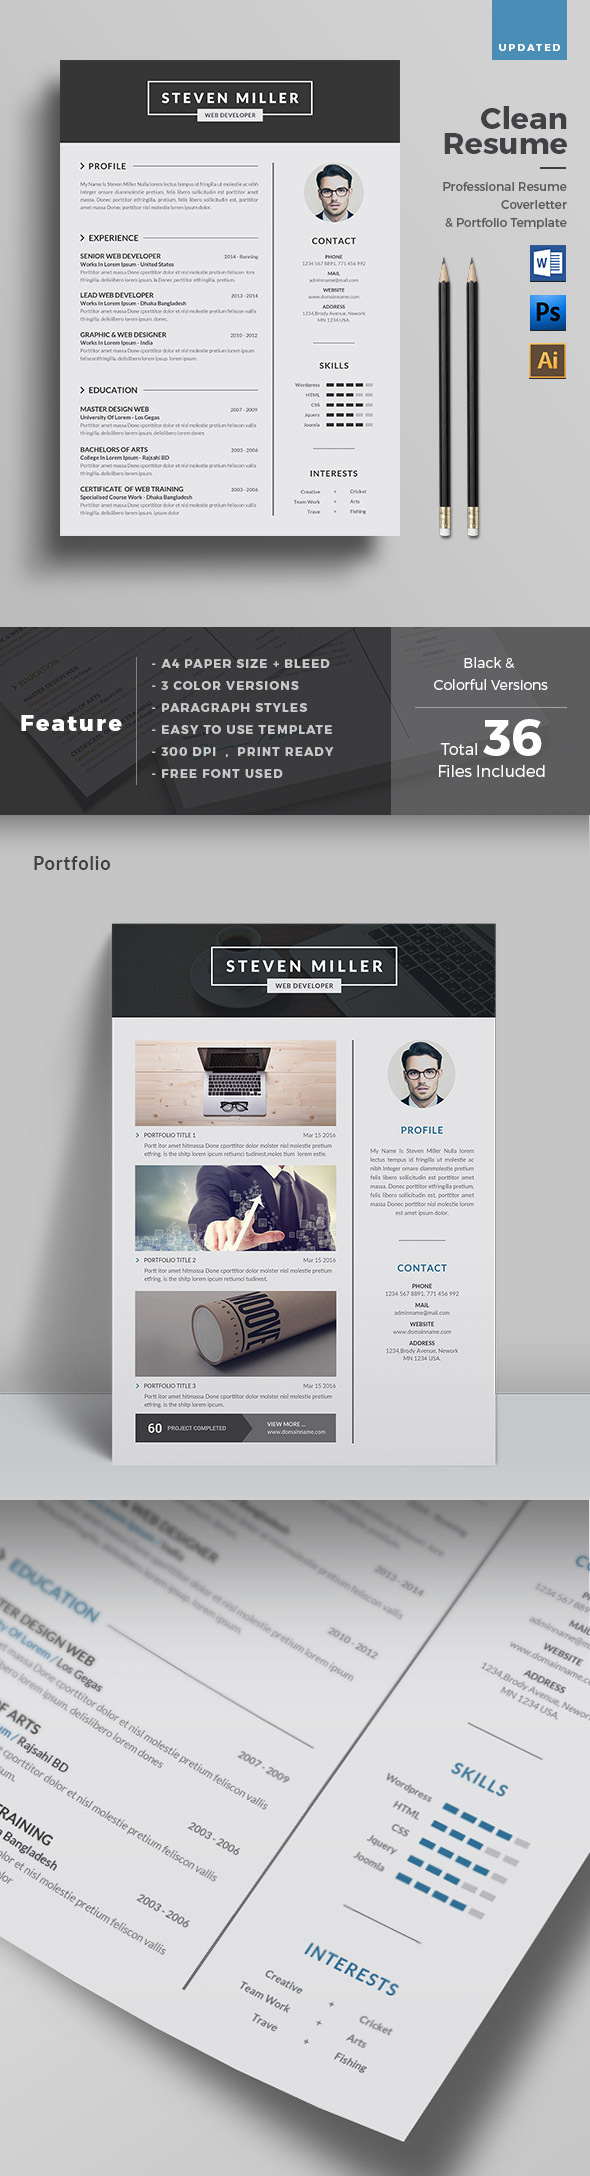 25 creative resume templates to land a new job in style clean creative resume template